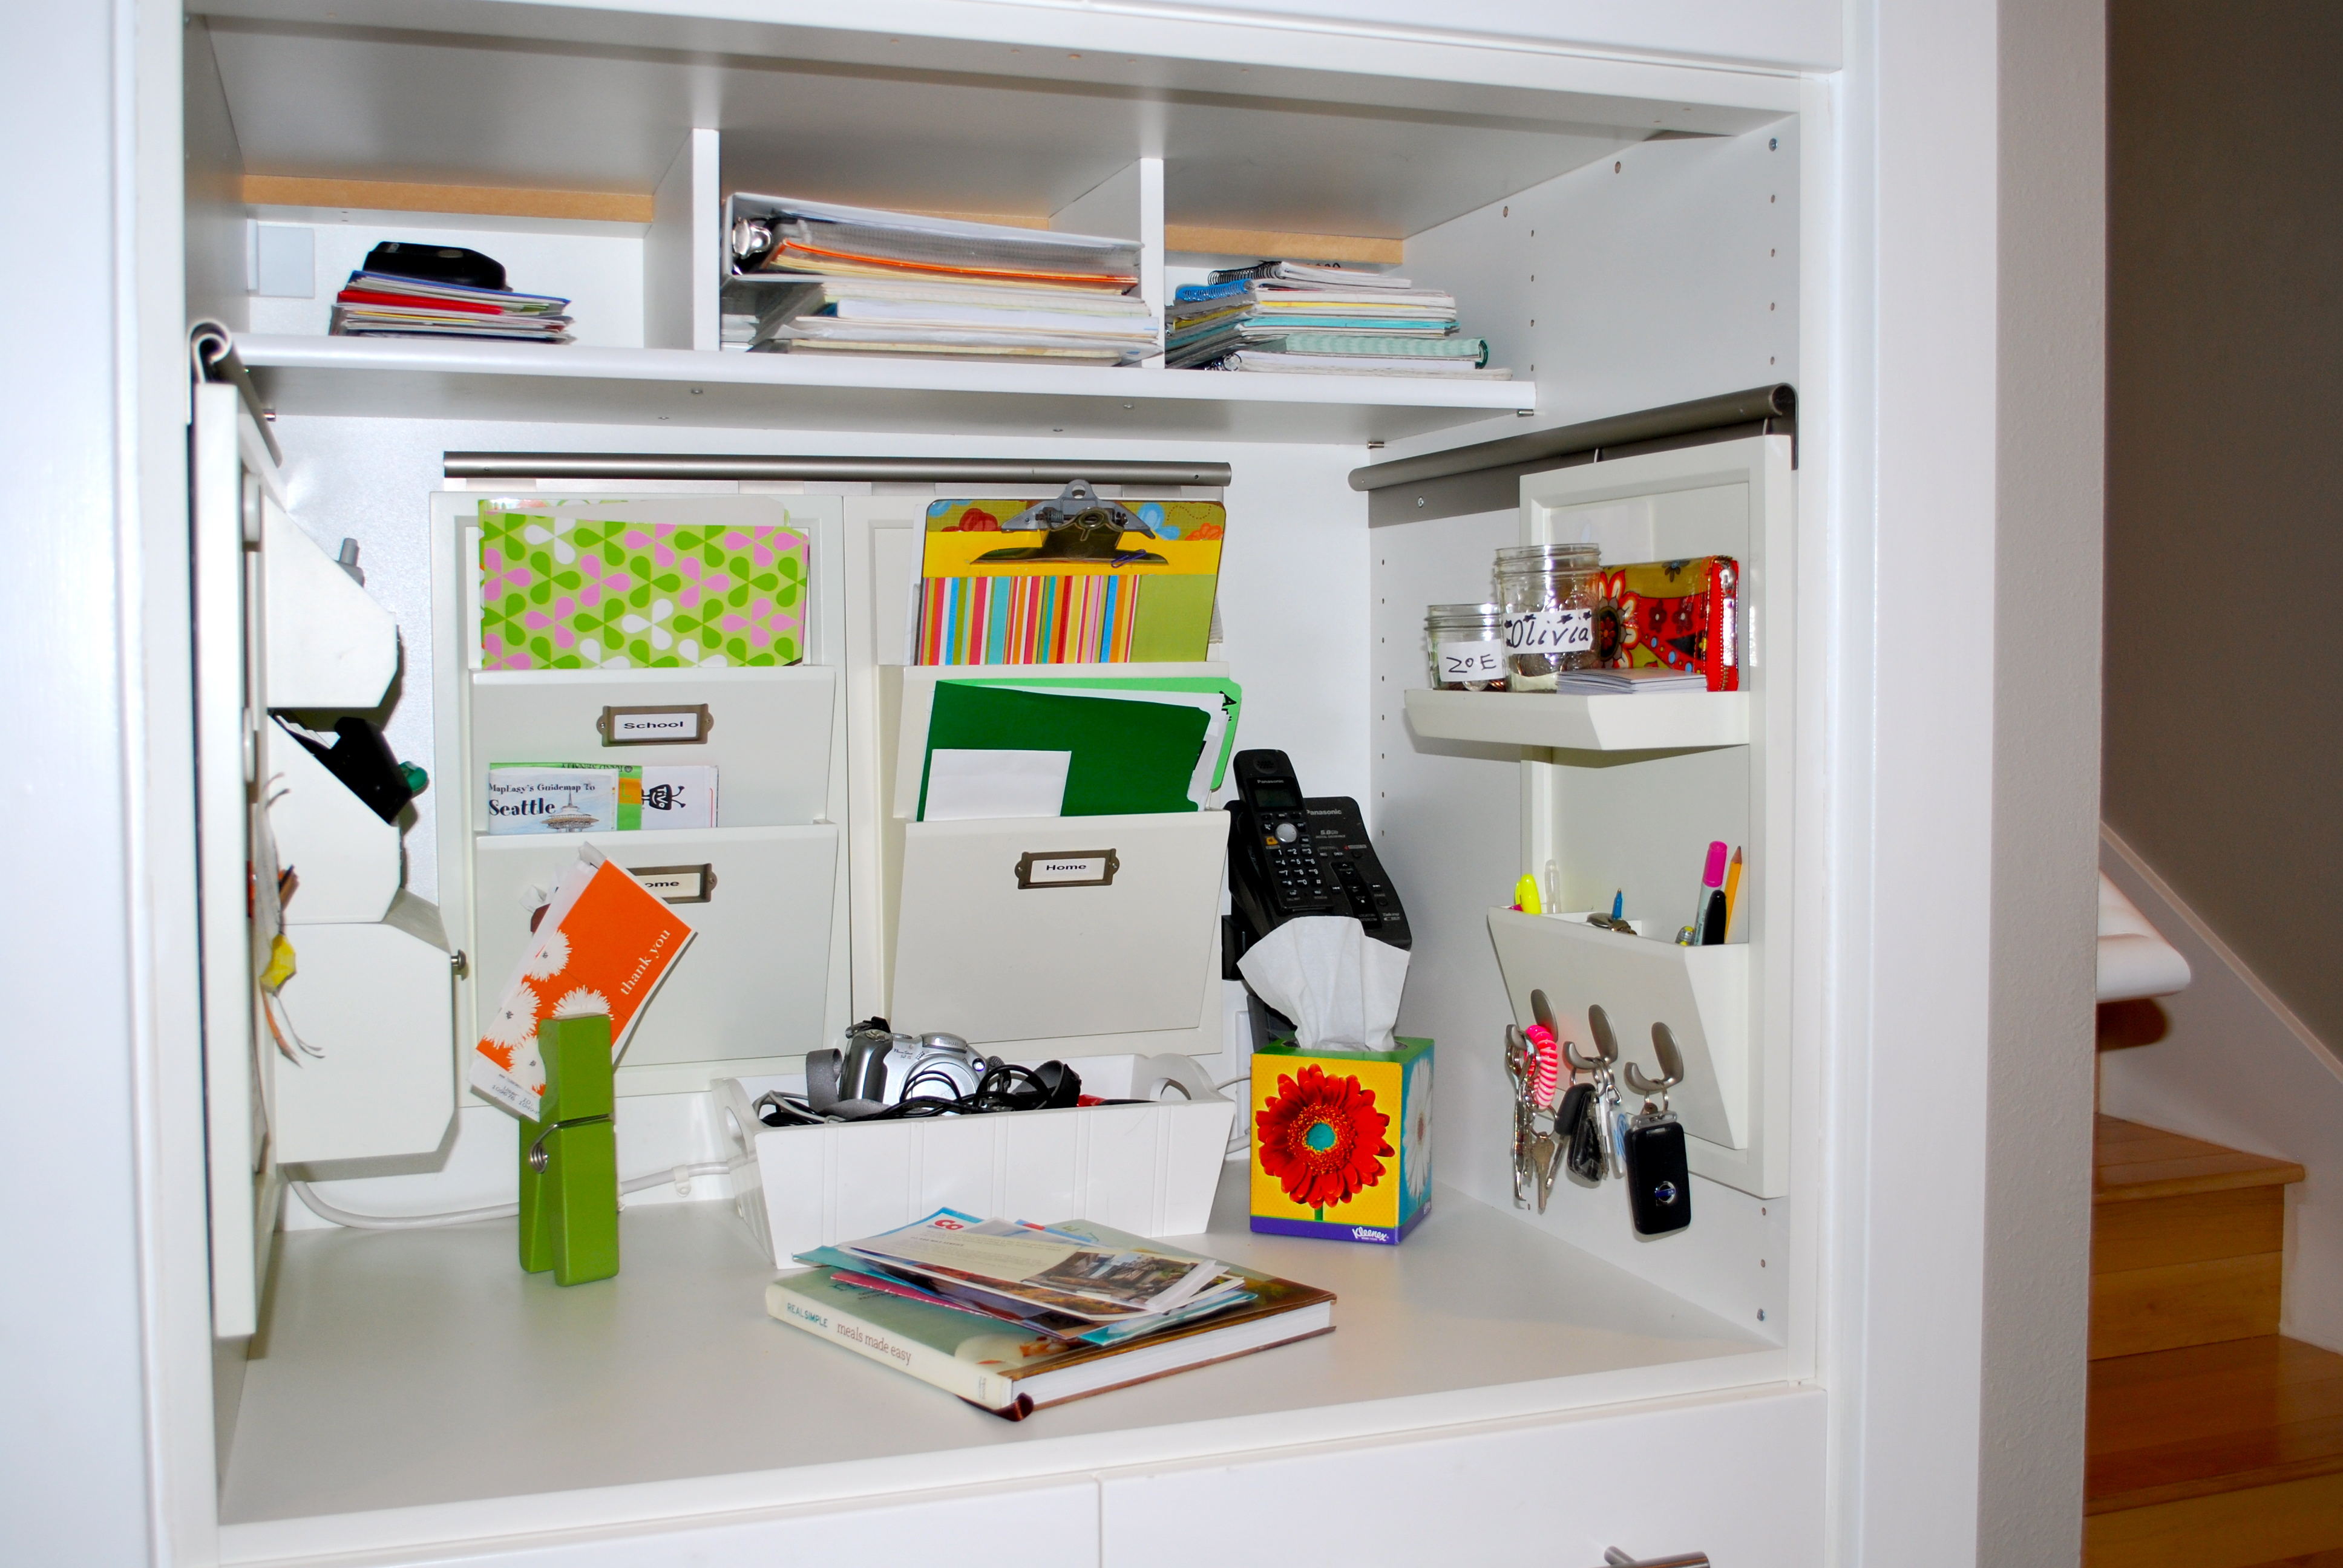 The Pottery Barn Daily System fit perfectly into the IKEA cabinet shell.